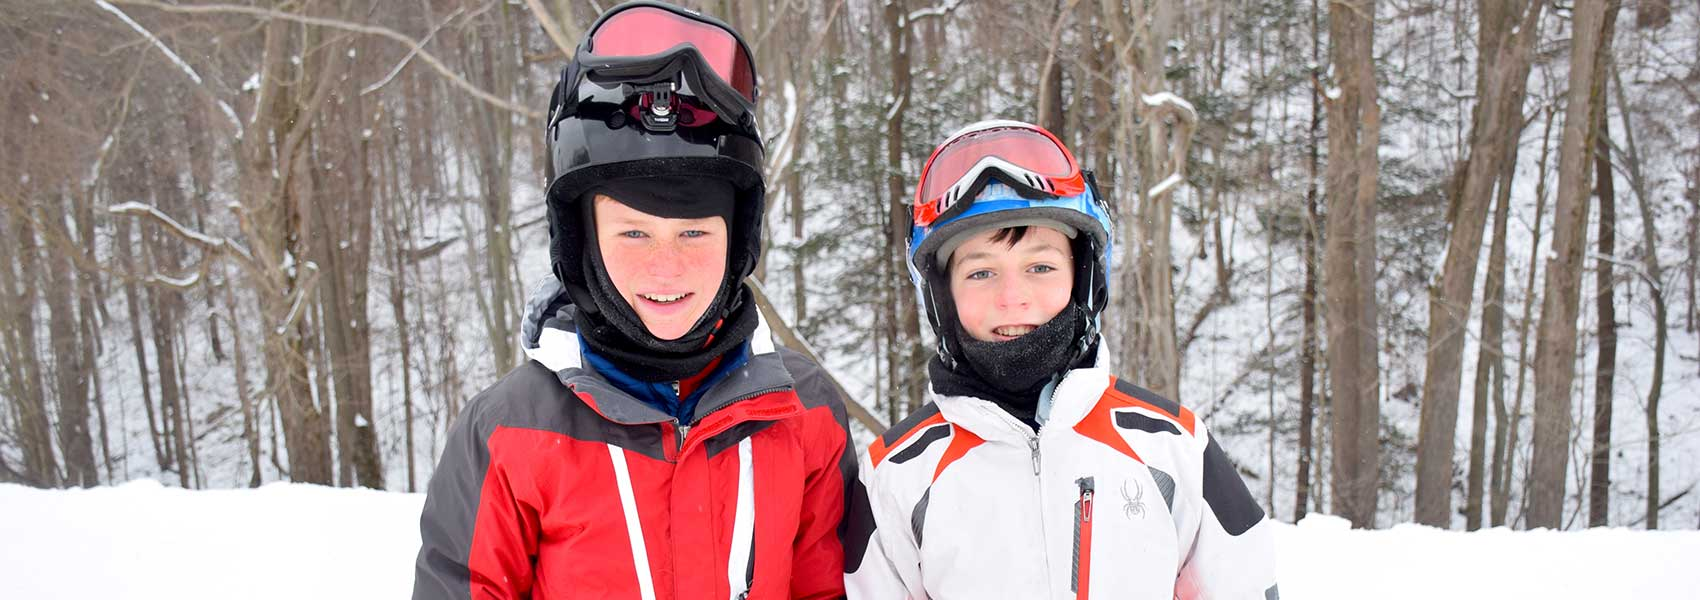 Two young skiers at Laurel Mountain